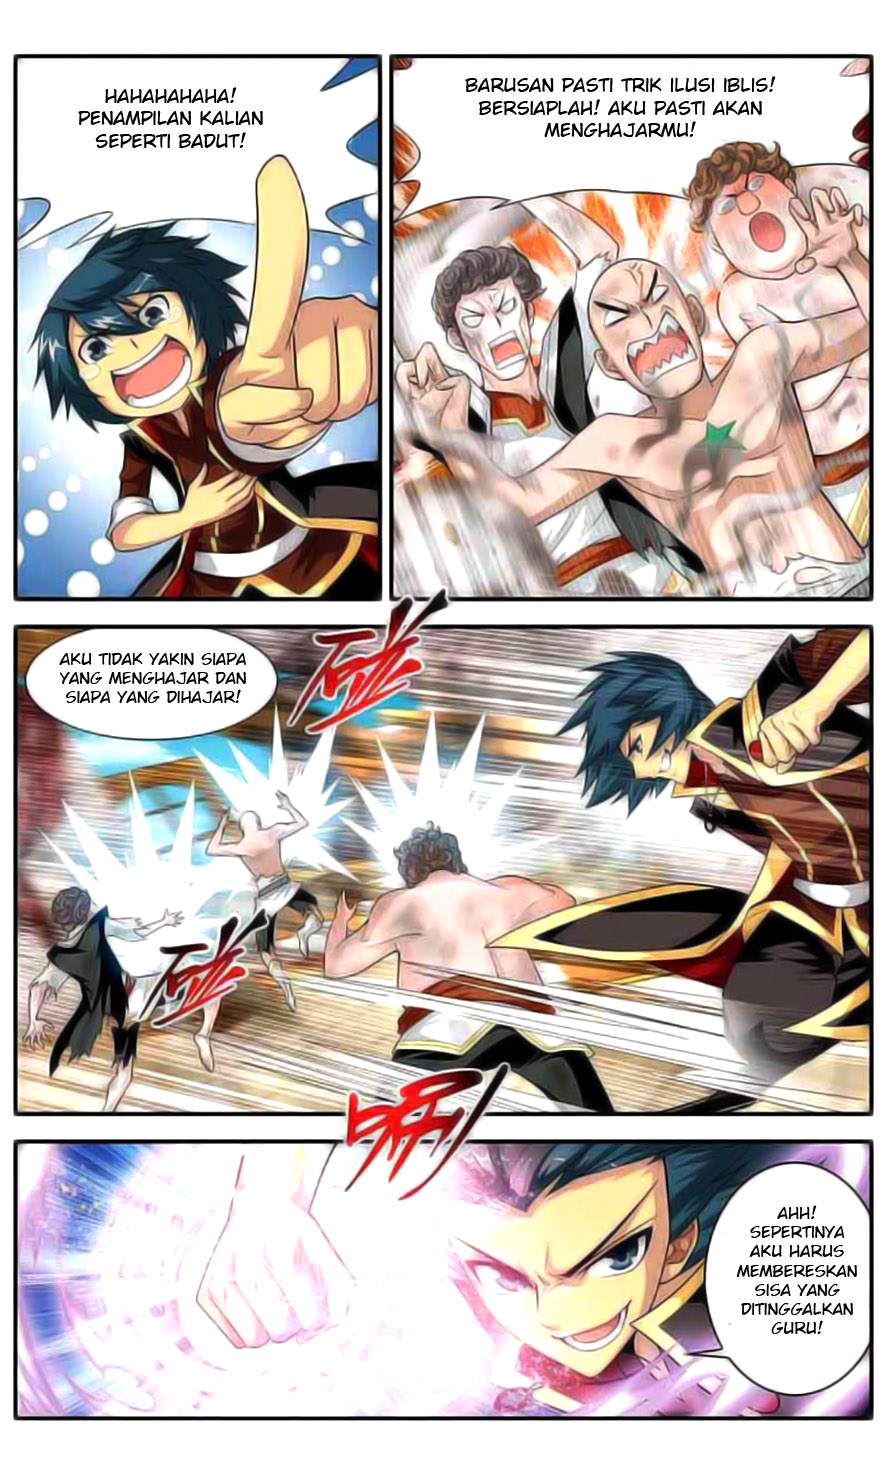 Dilarang COPAS - situs resmi www.mangacanblog.com - Komik battle through heaven 038 - chapter 38 39 Indonesia battle through heaven 038 - chapter 38 Terbaru 7|Baca Manga Komik Indonesia|Mangacan